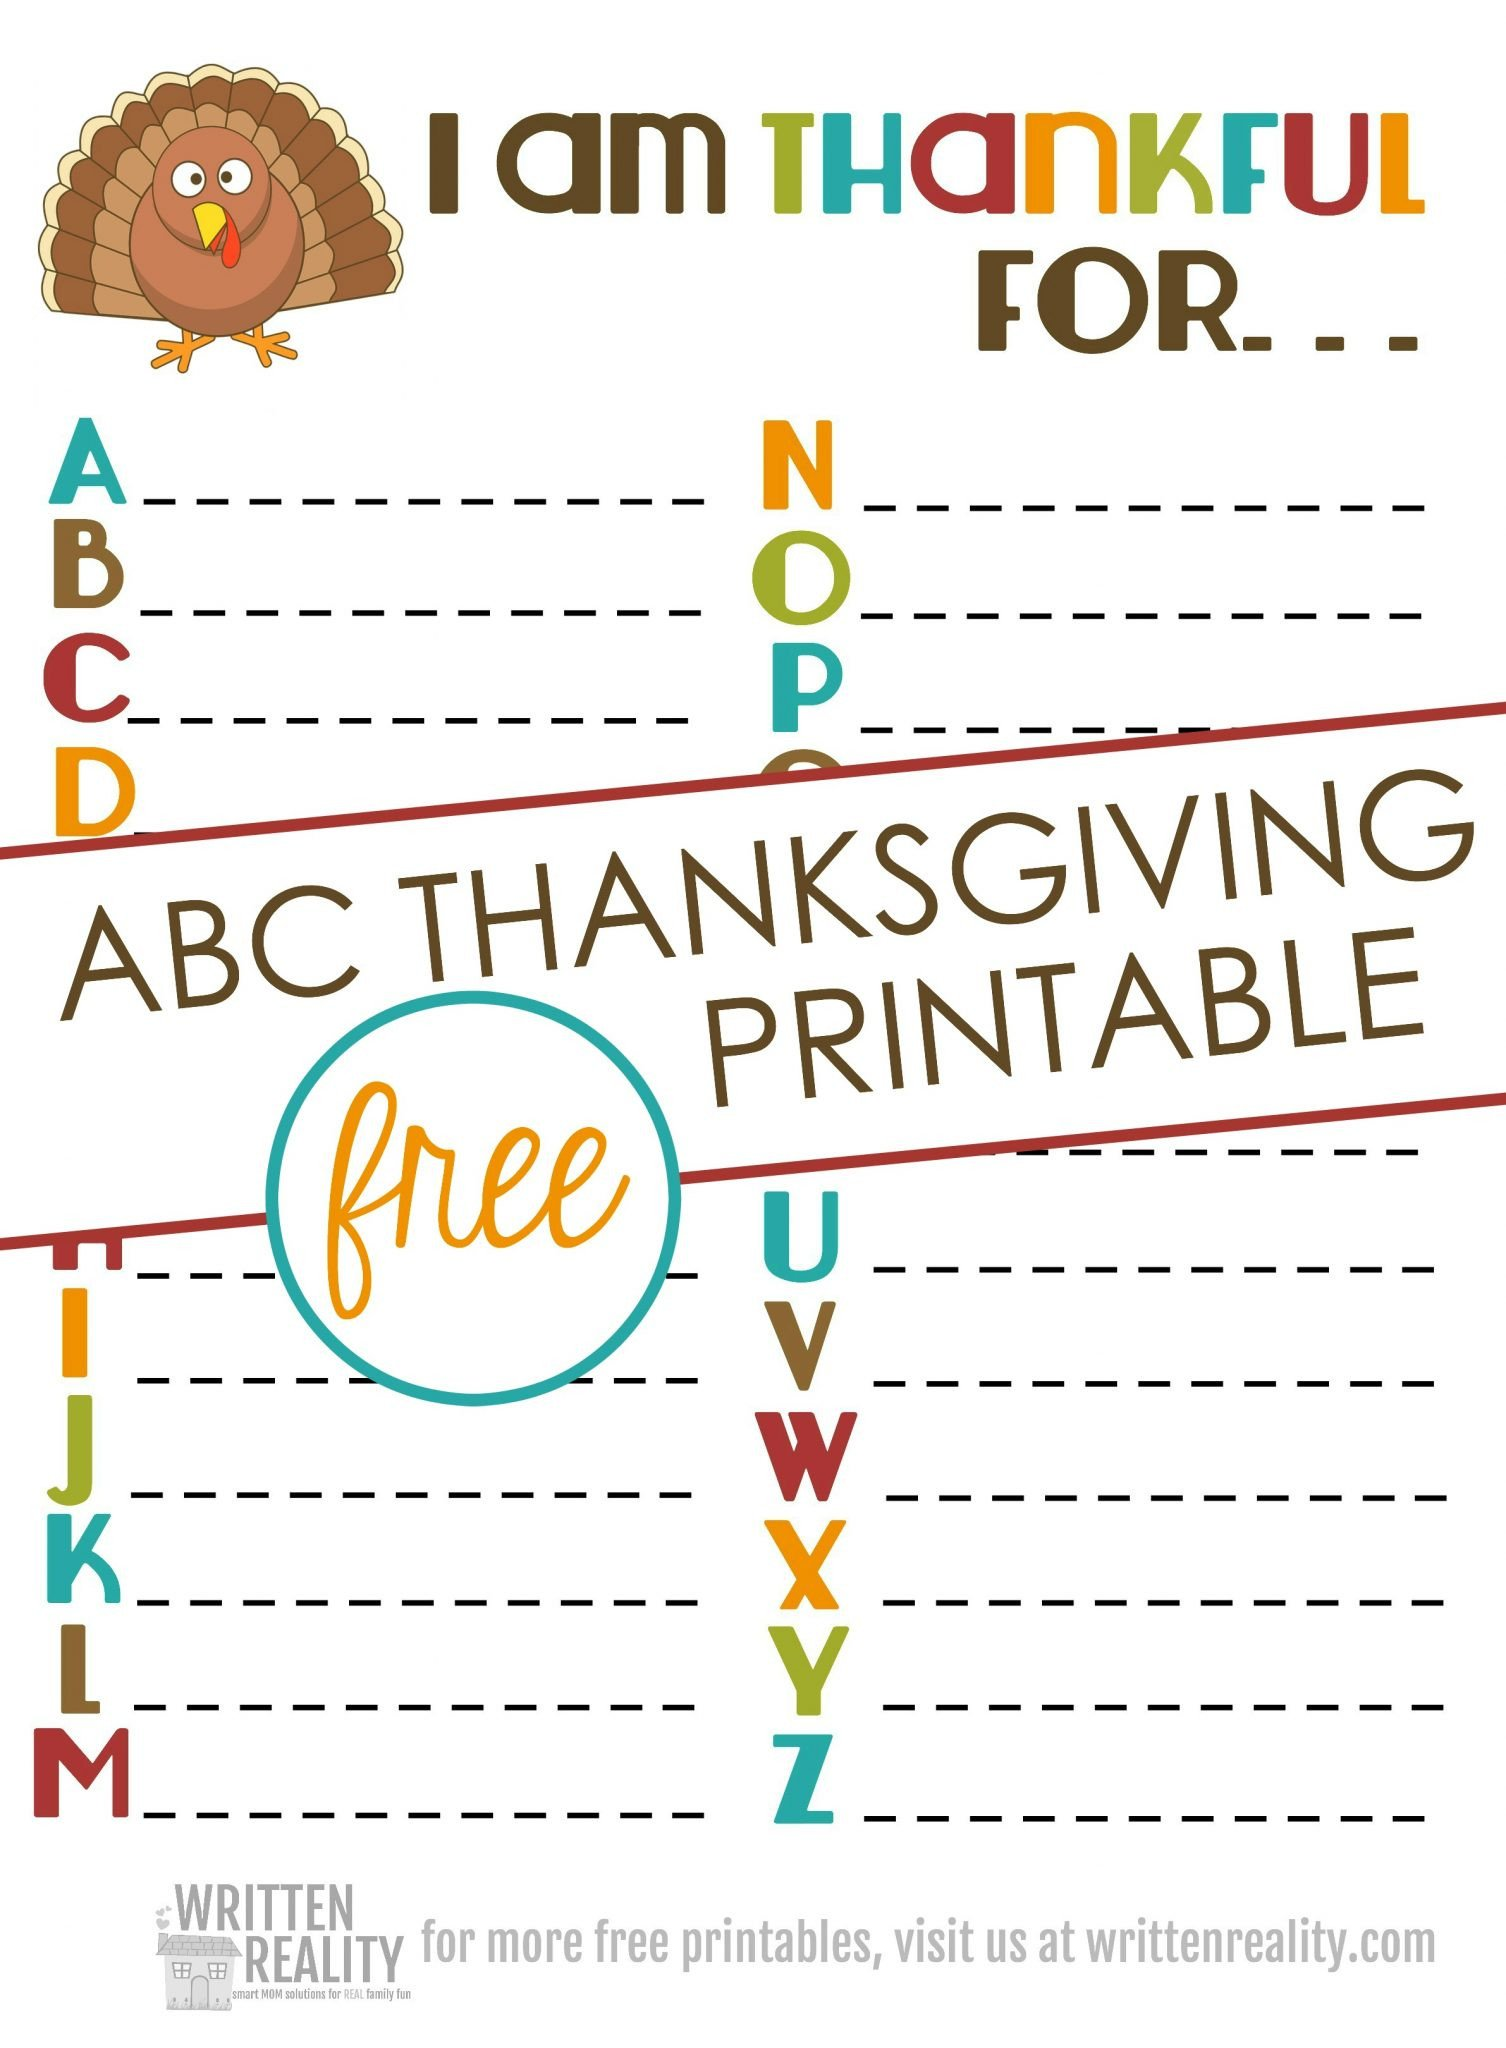 I Am Thankful for Worksheet Thankful Abcs Printable is Perfect for Thanksgiving